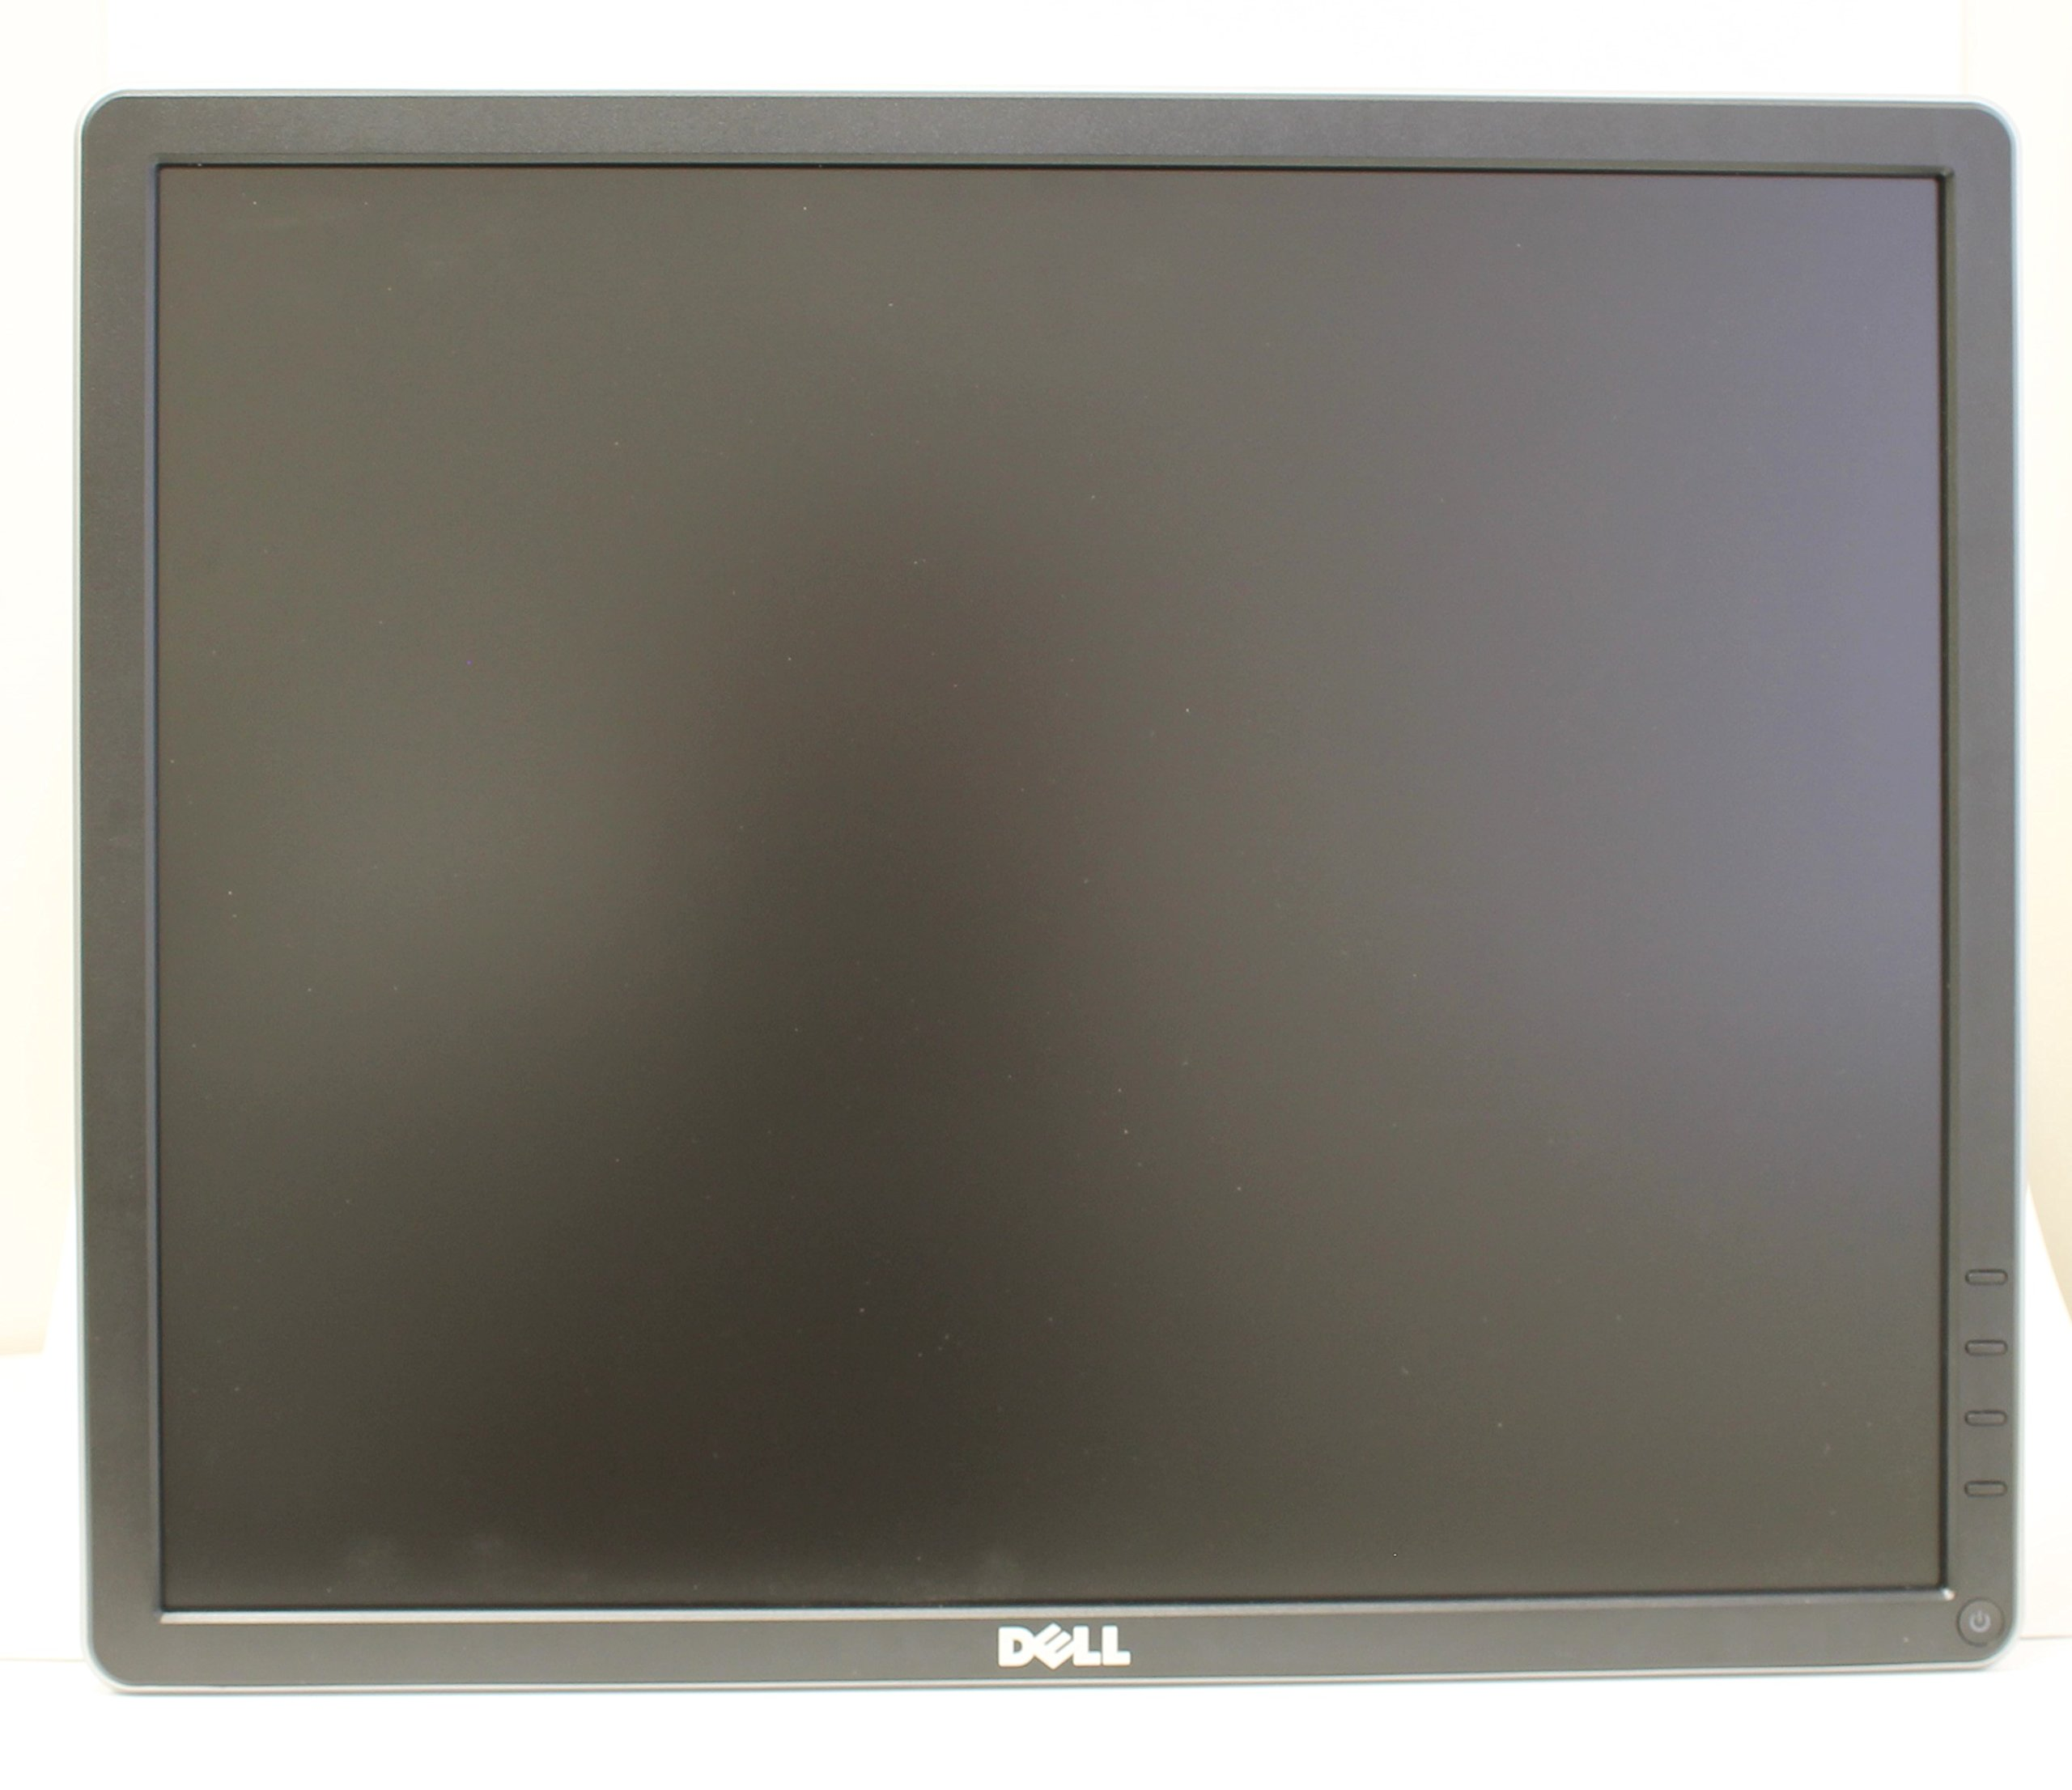 Dell P1914S Black 19-inch 1280 x 1024, 8ms (GTG) LED Backlight LCD Monitor,NO STAND, IPS 250 cd/m2 1000:1